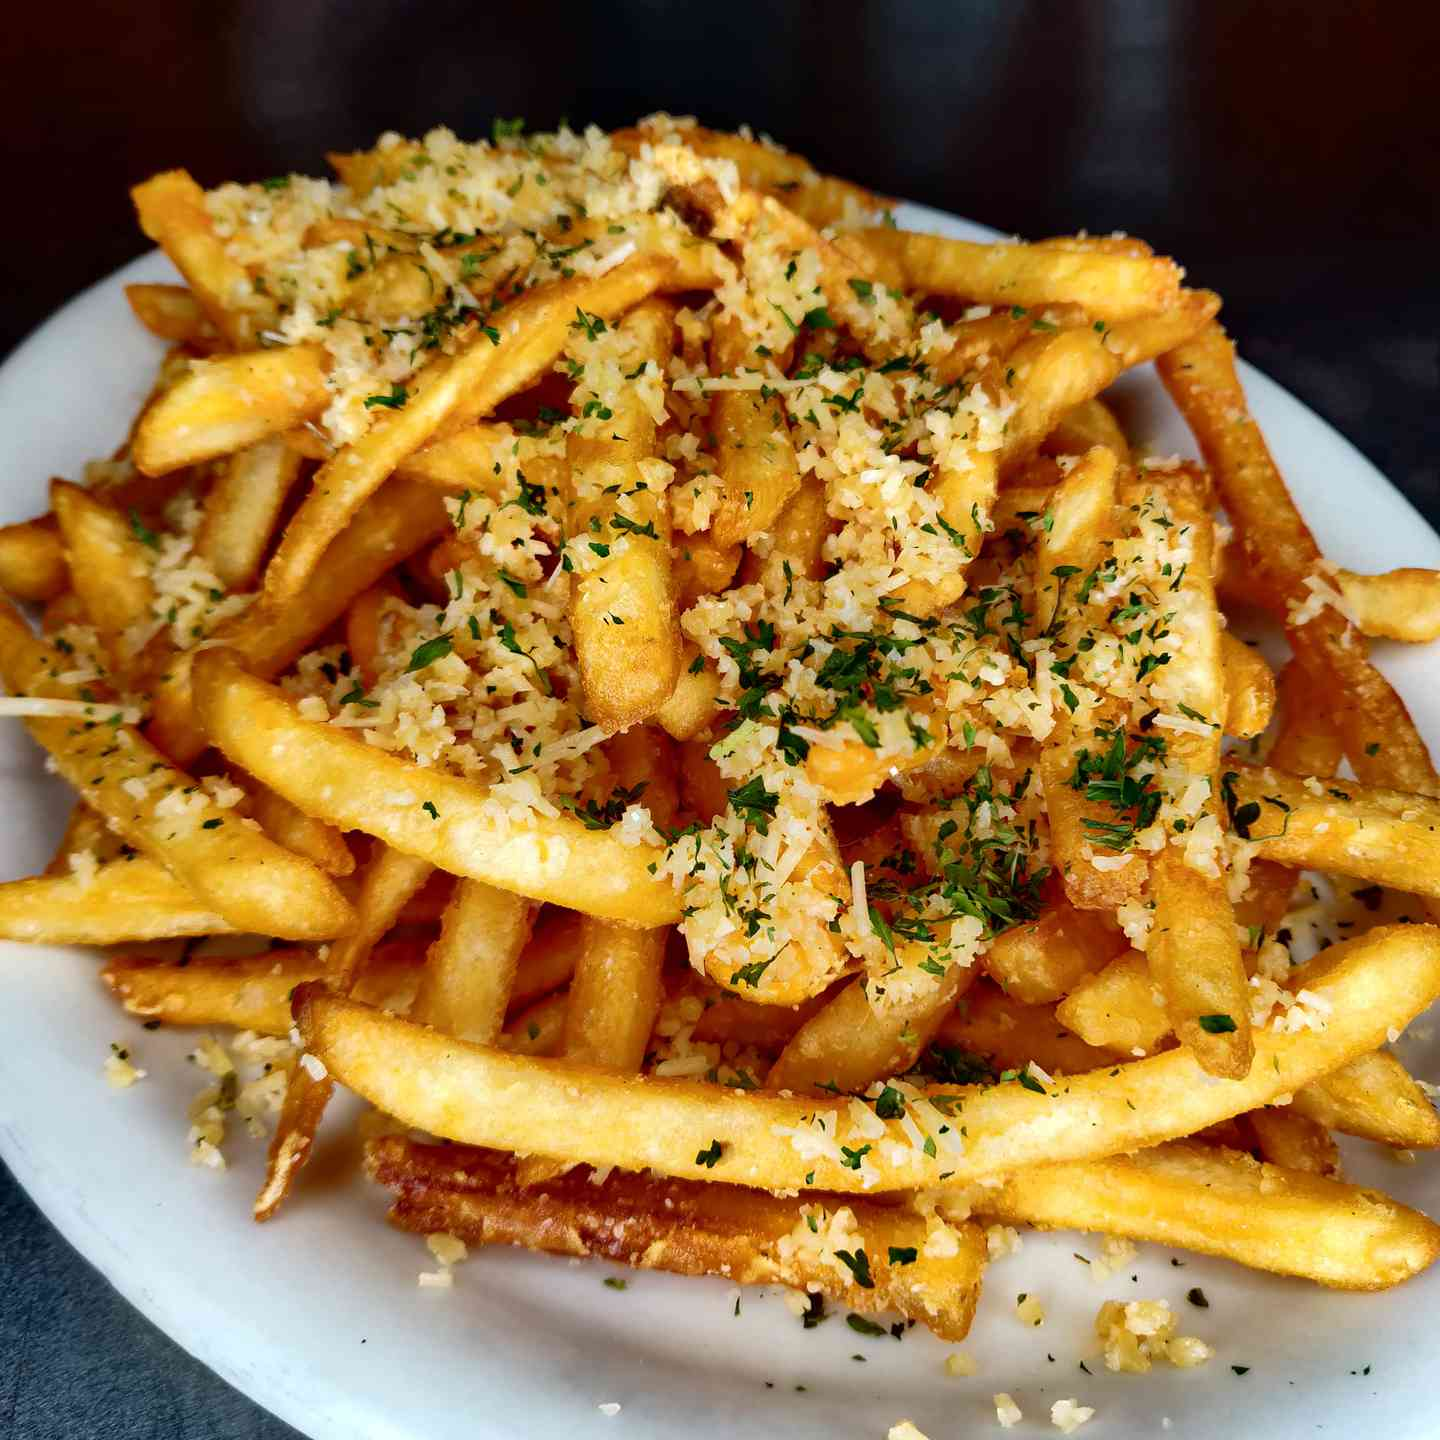 Large Garlic Fries